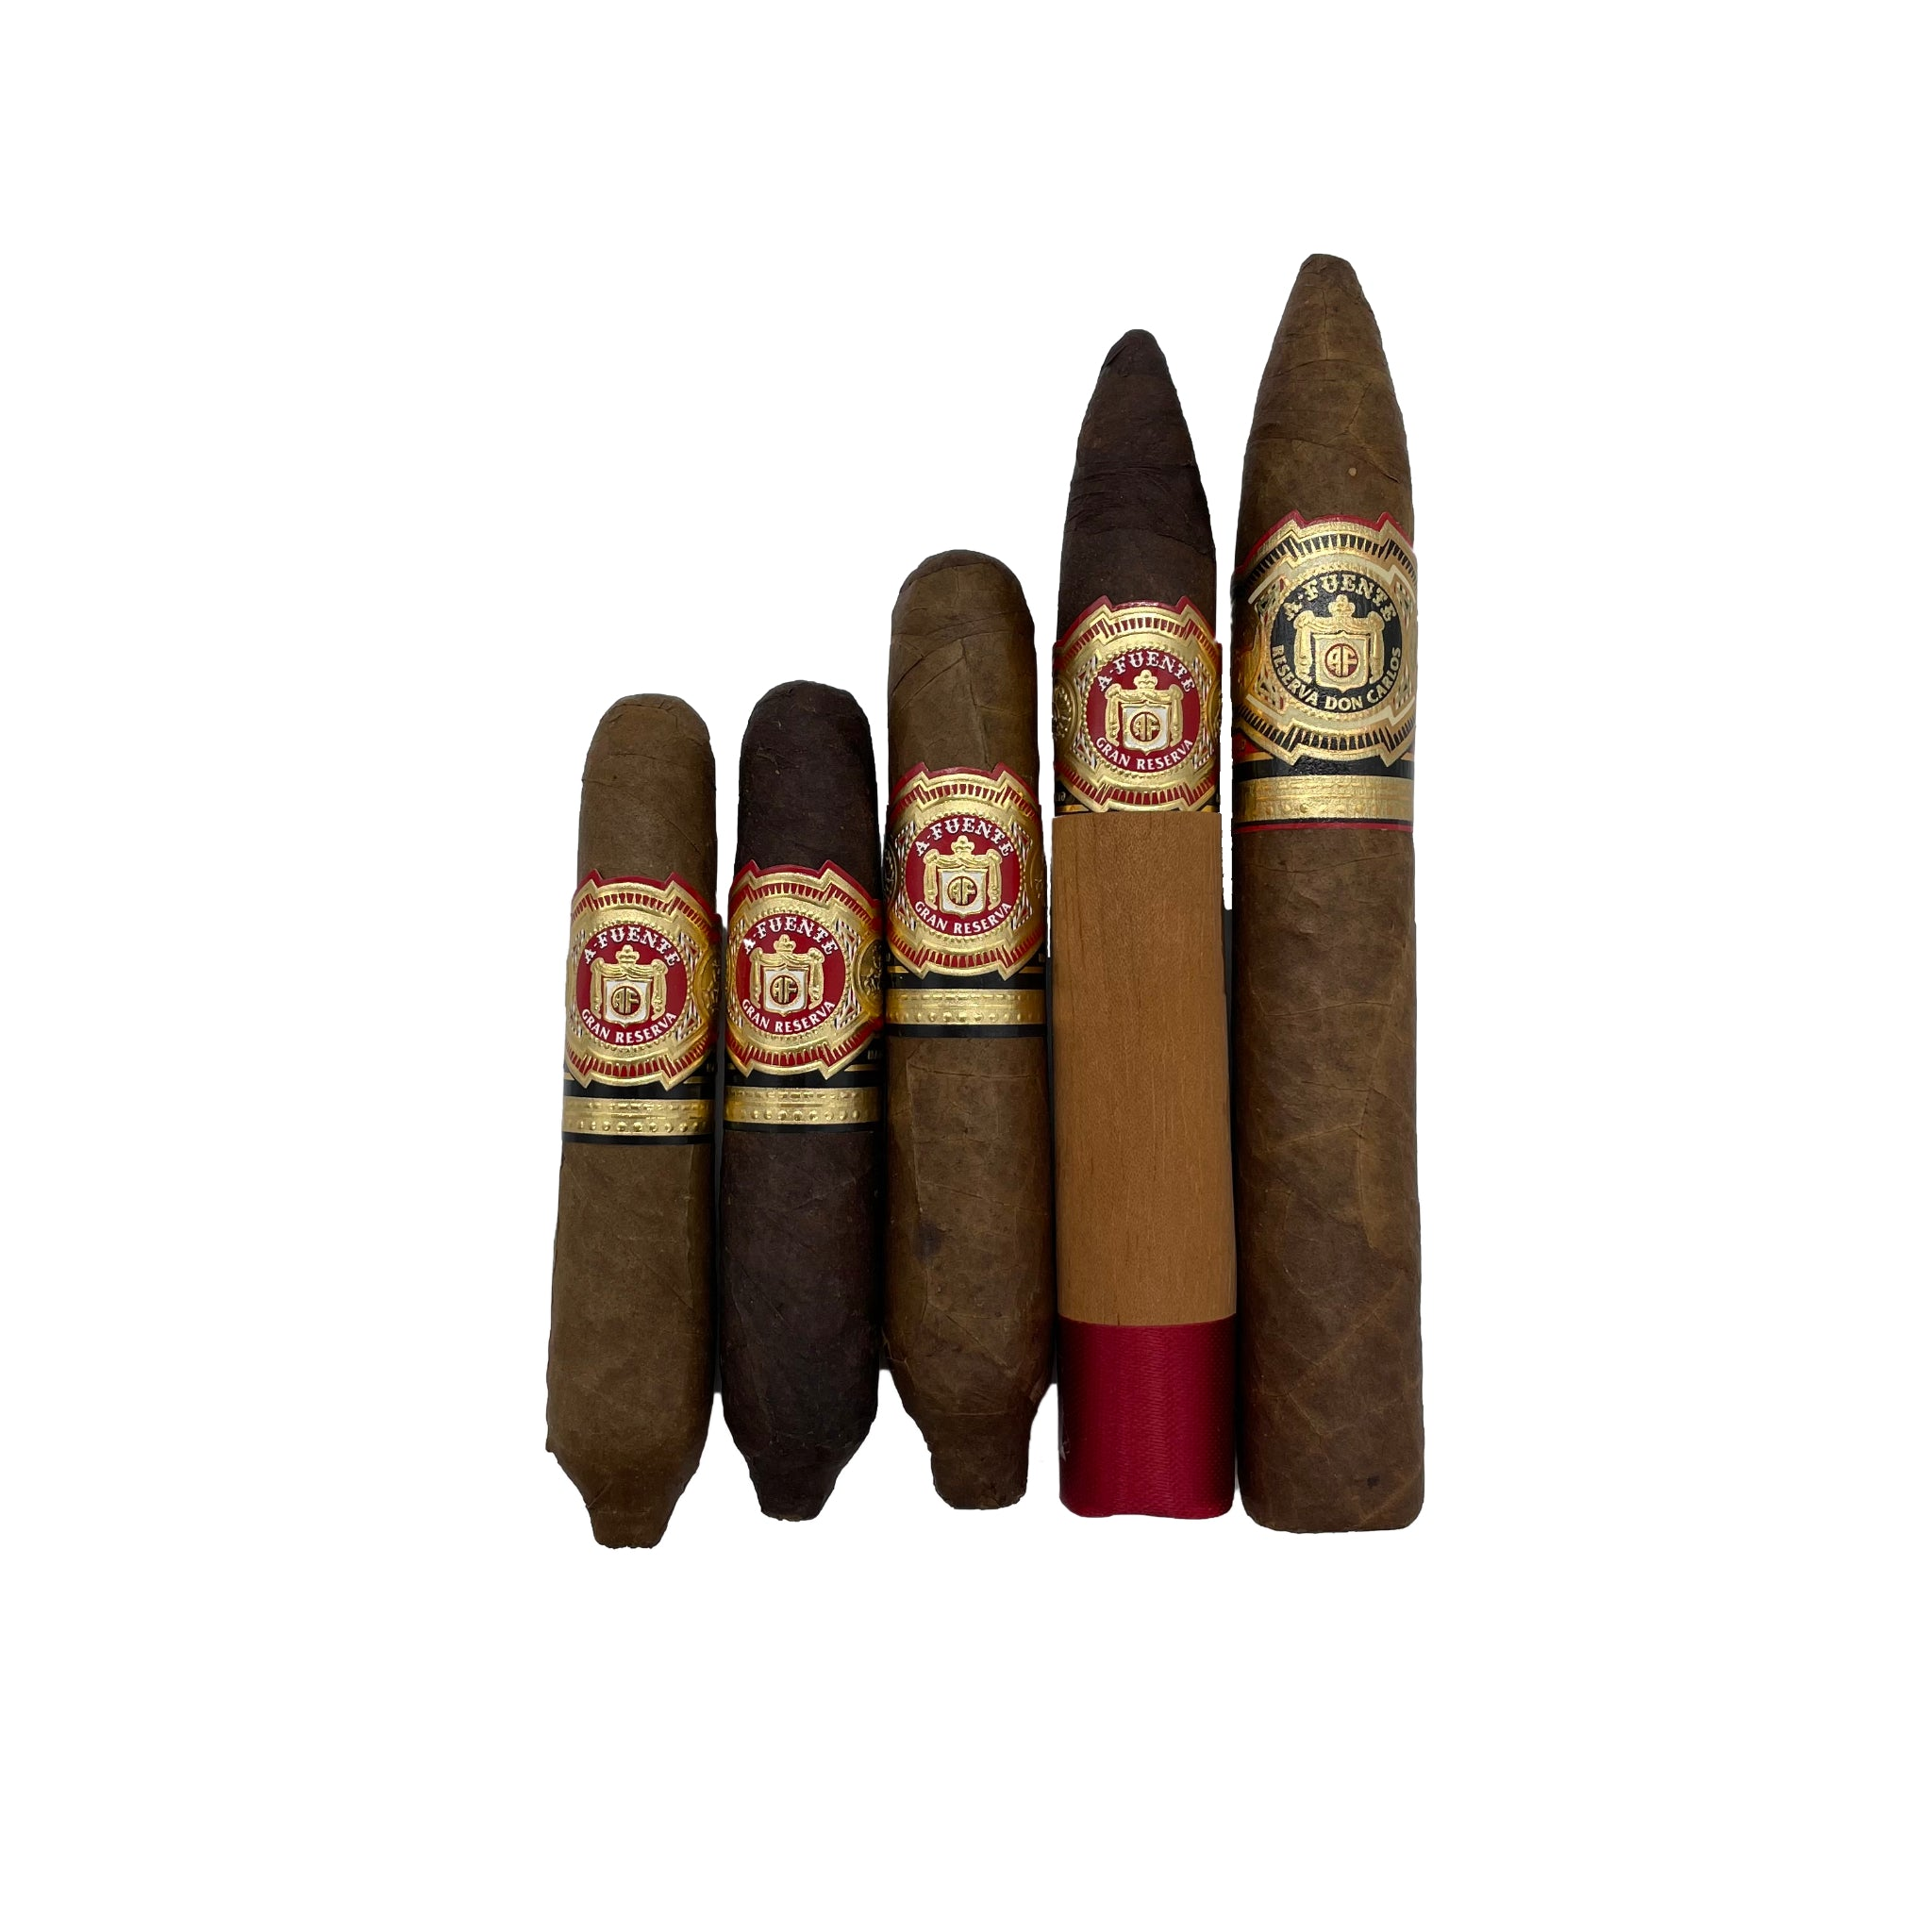 Arturo Fuente Collection 1